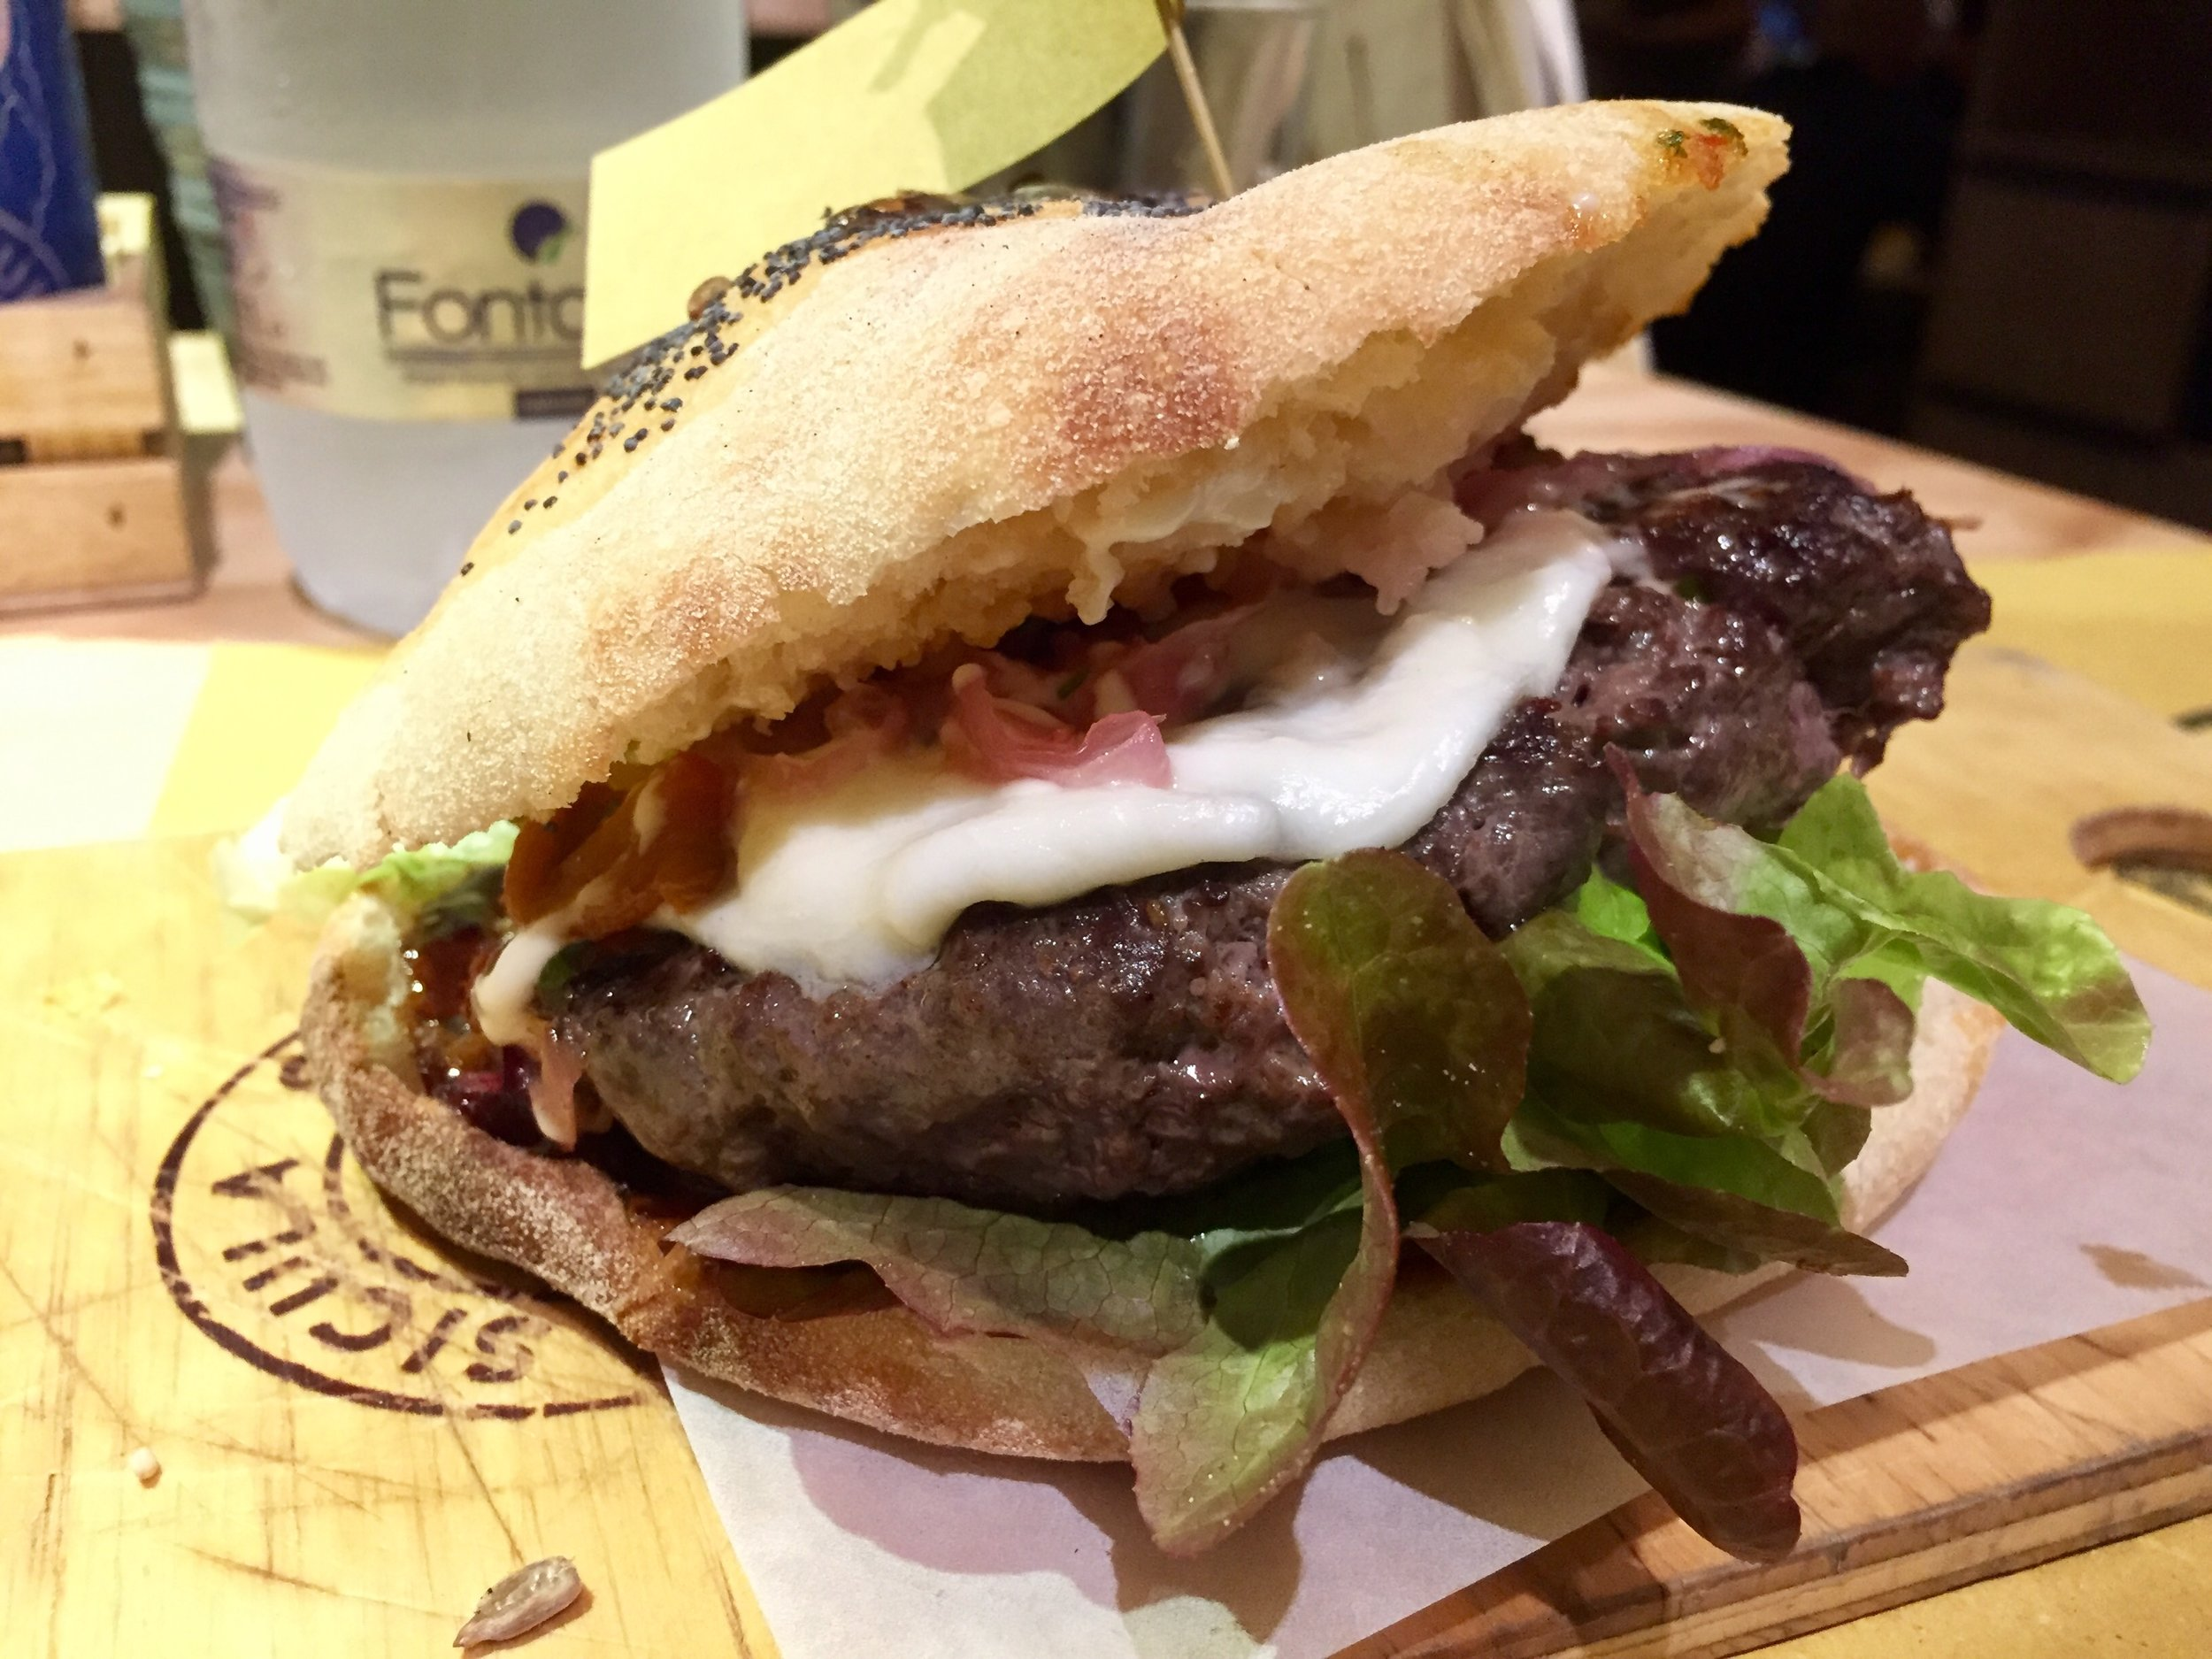 The epic burger at Fud in Palermo (can find this eatery in Catania too) - proudly made with Sicilian meat, cheese and produce